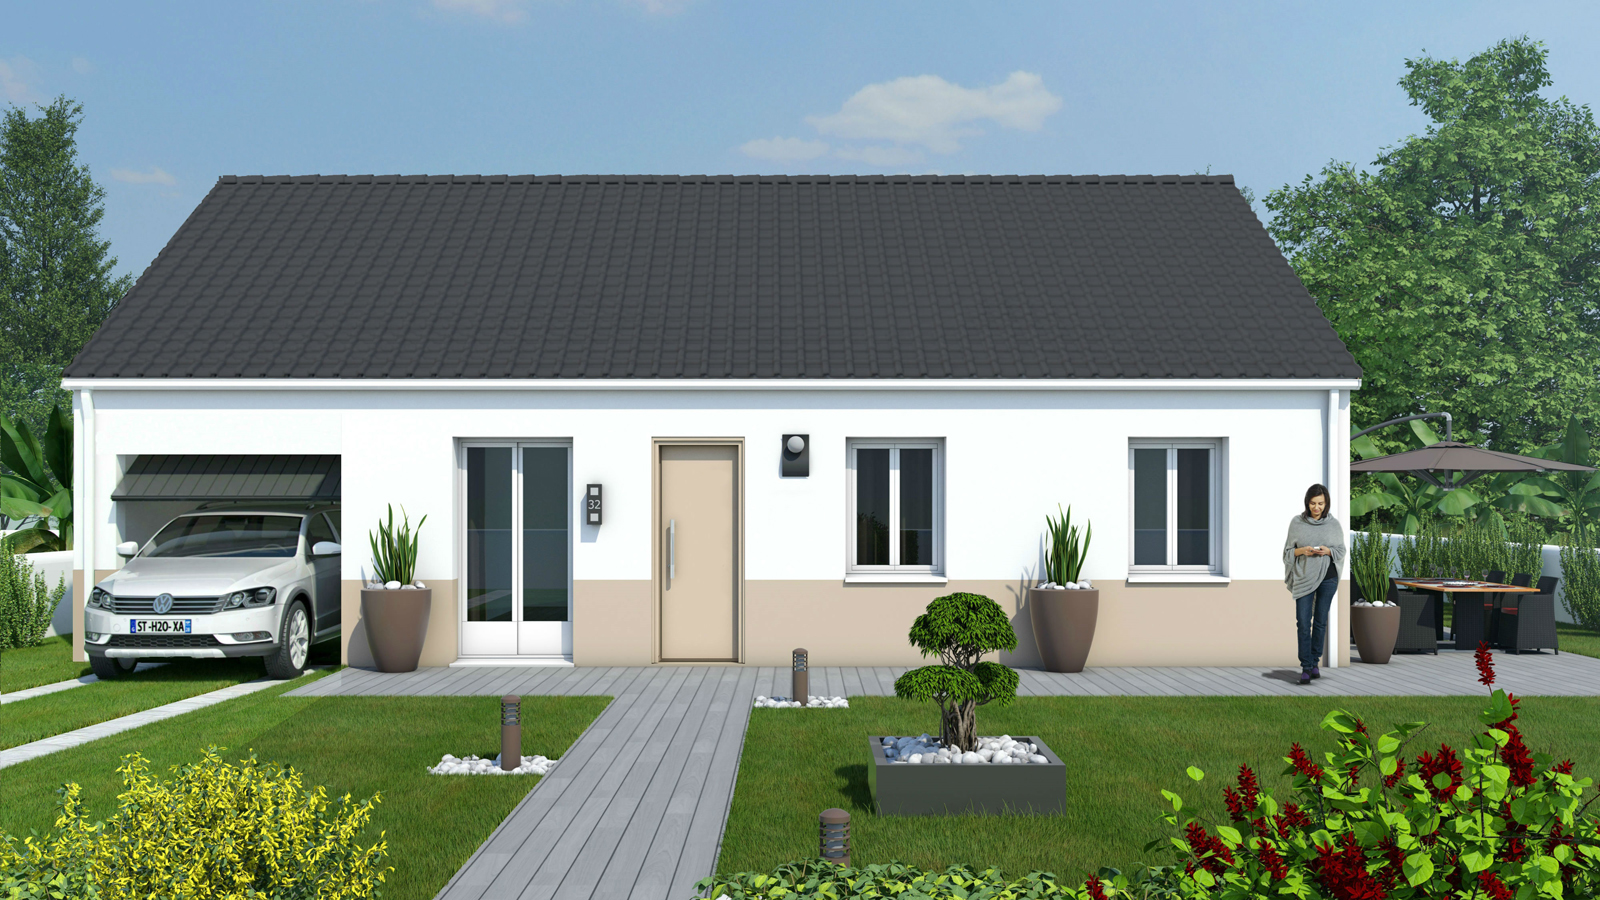 Maison Basse consommation 3 chambres